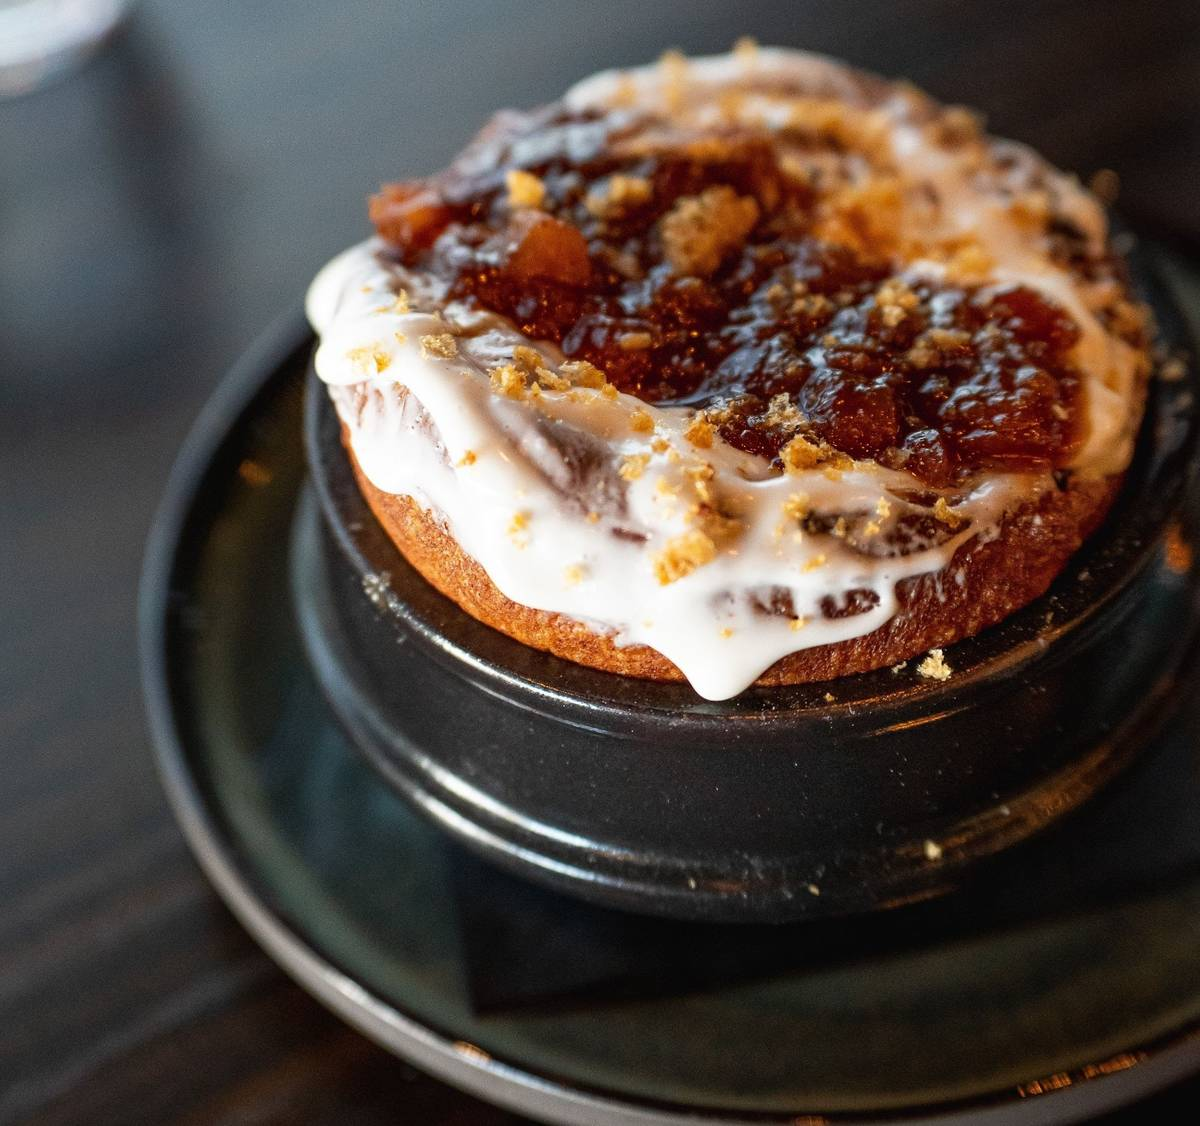 Duck confit cinnamon roll at Sparrow + Wolf. (Sparrow + Wolf)